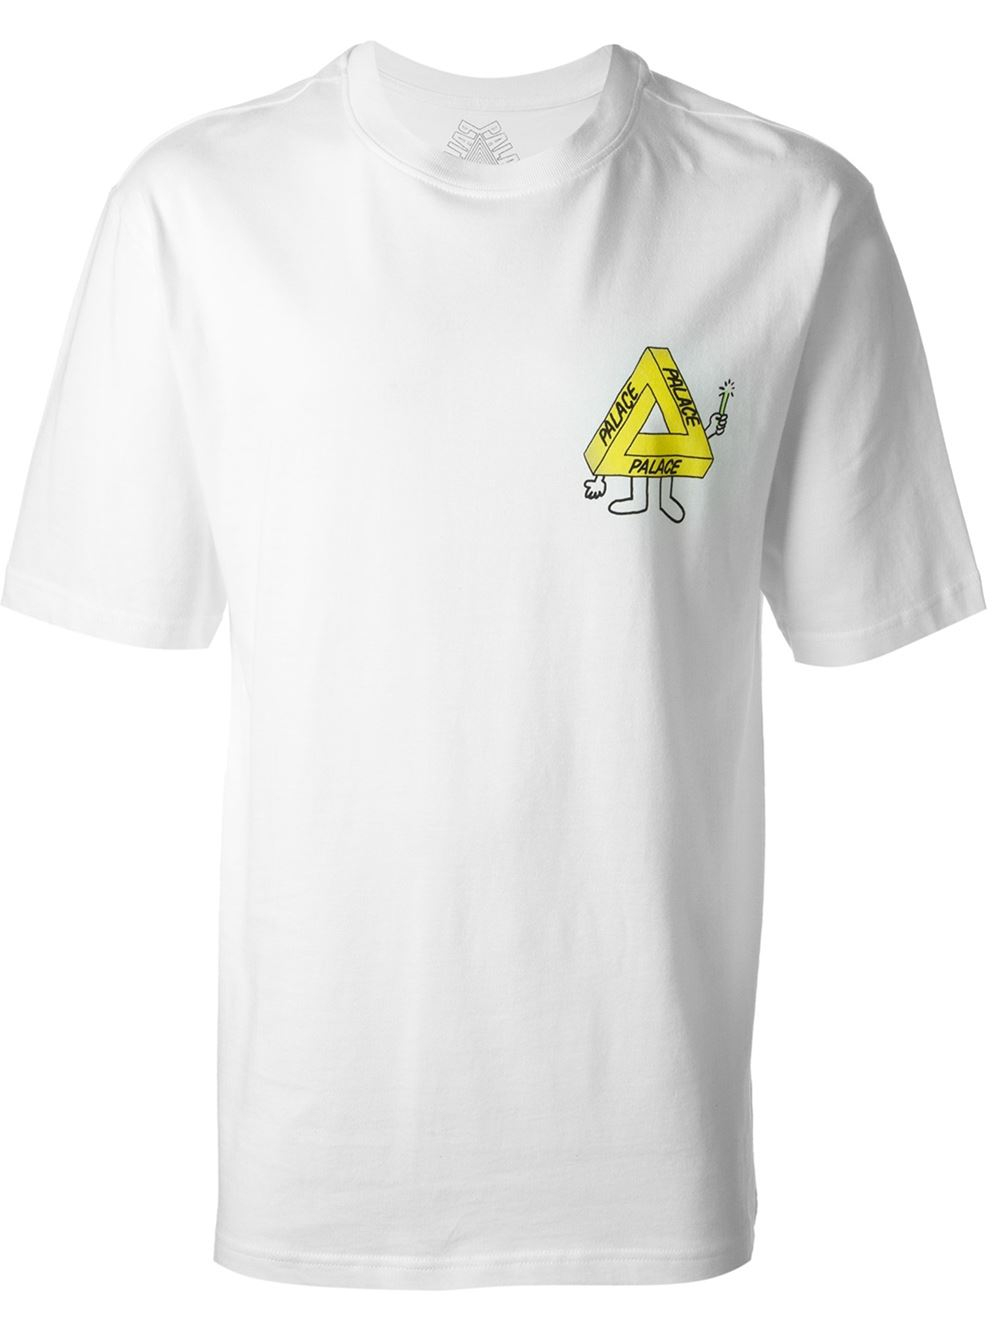 545d1435f312 Lyst - Palace Glow Sticks Tshirt in White for Men